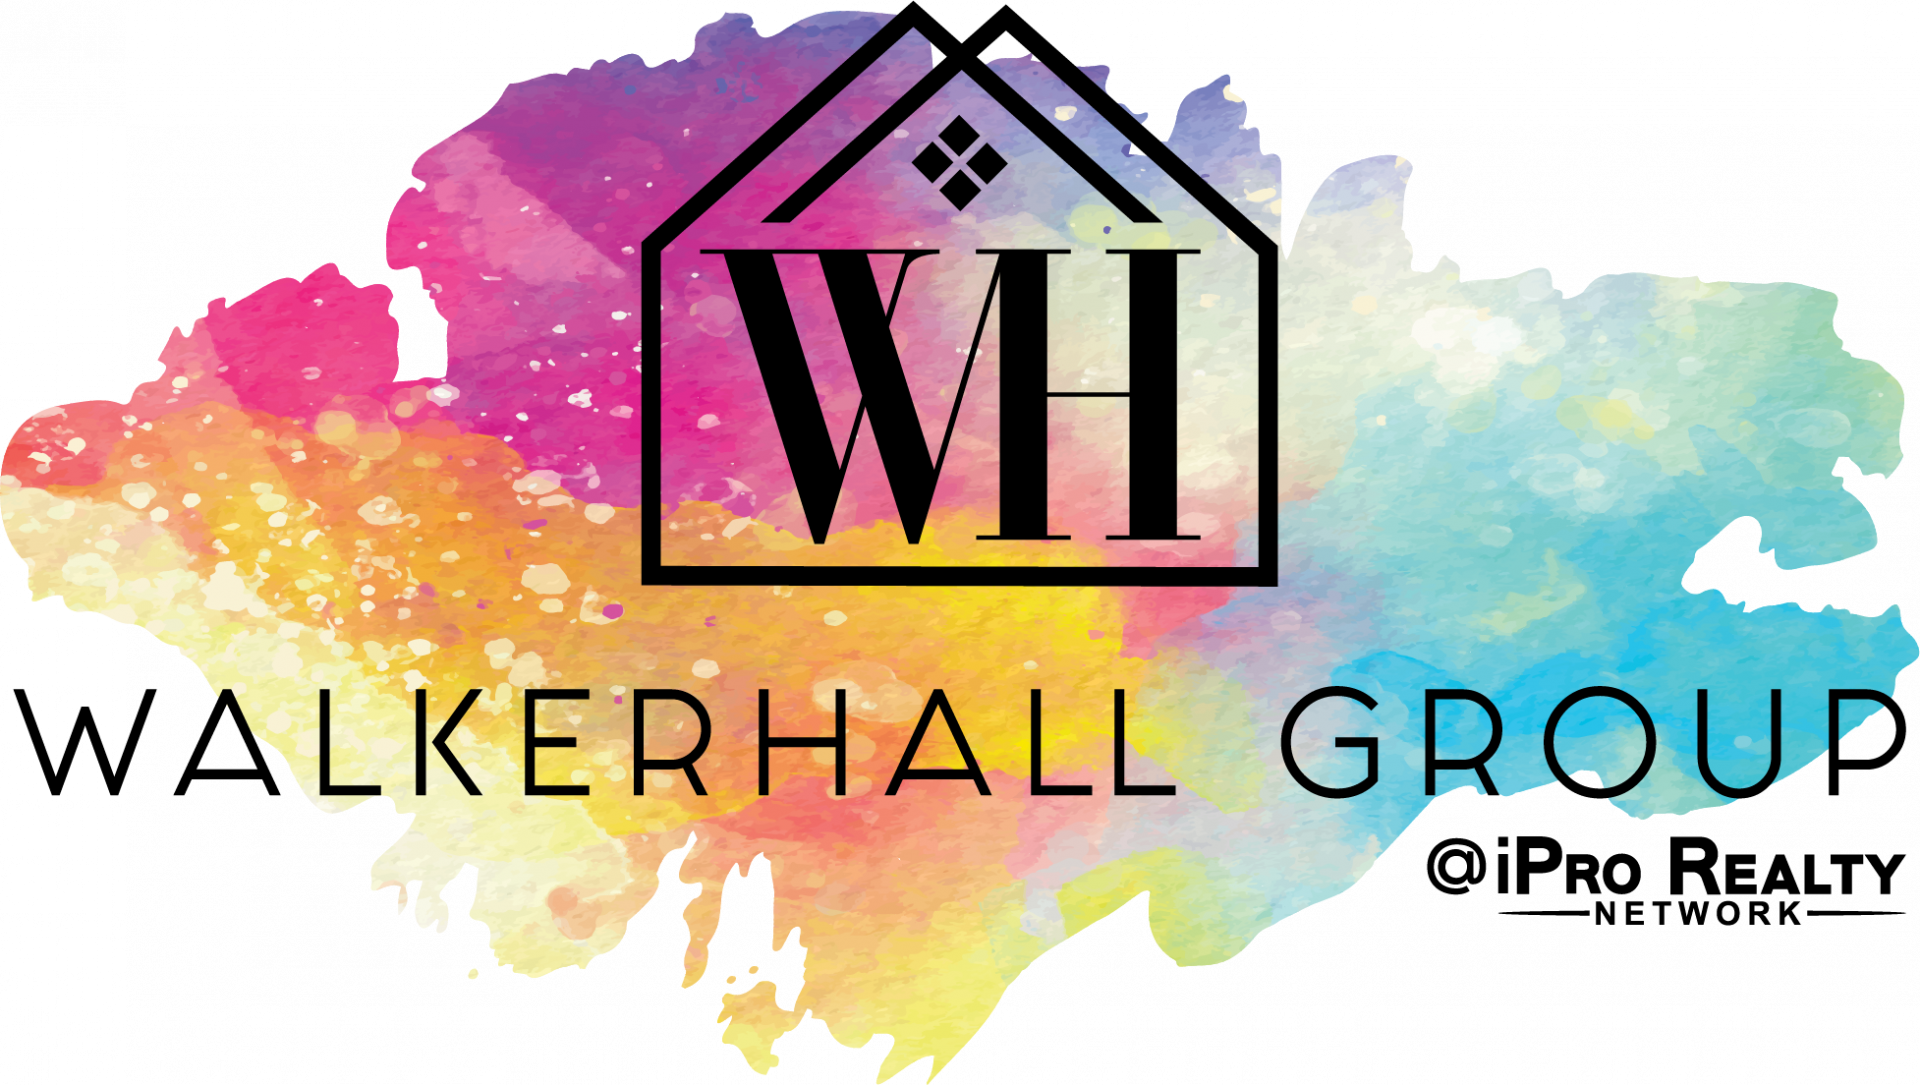 WalkerHall Group @ iPro Realty logo